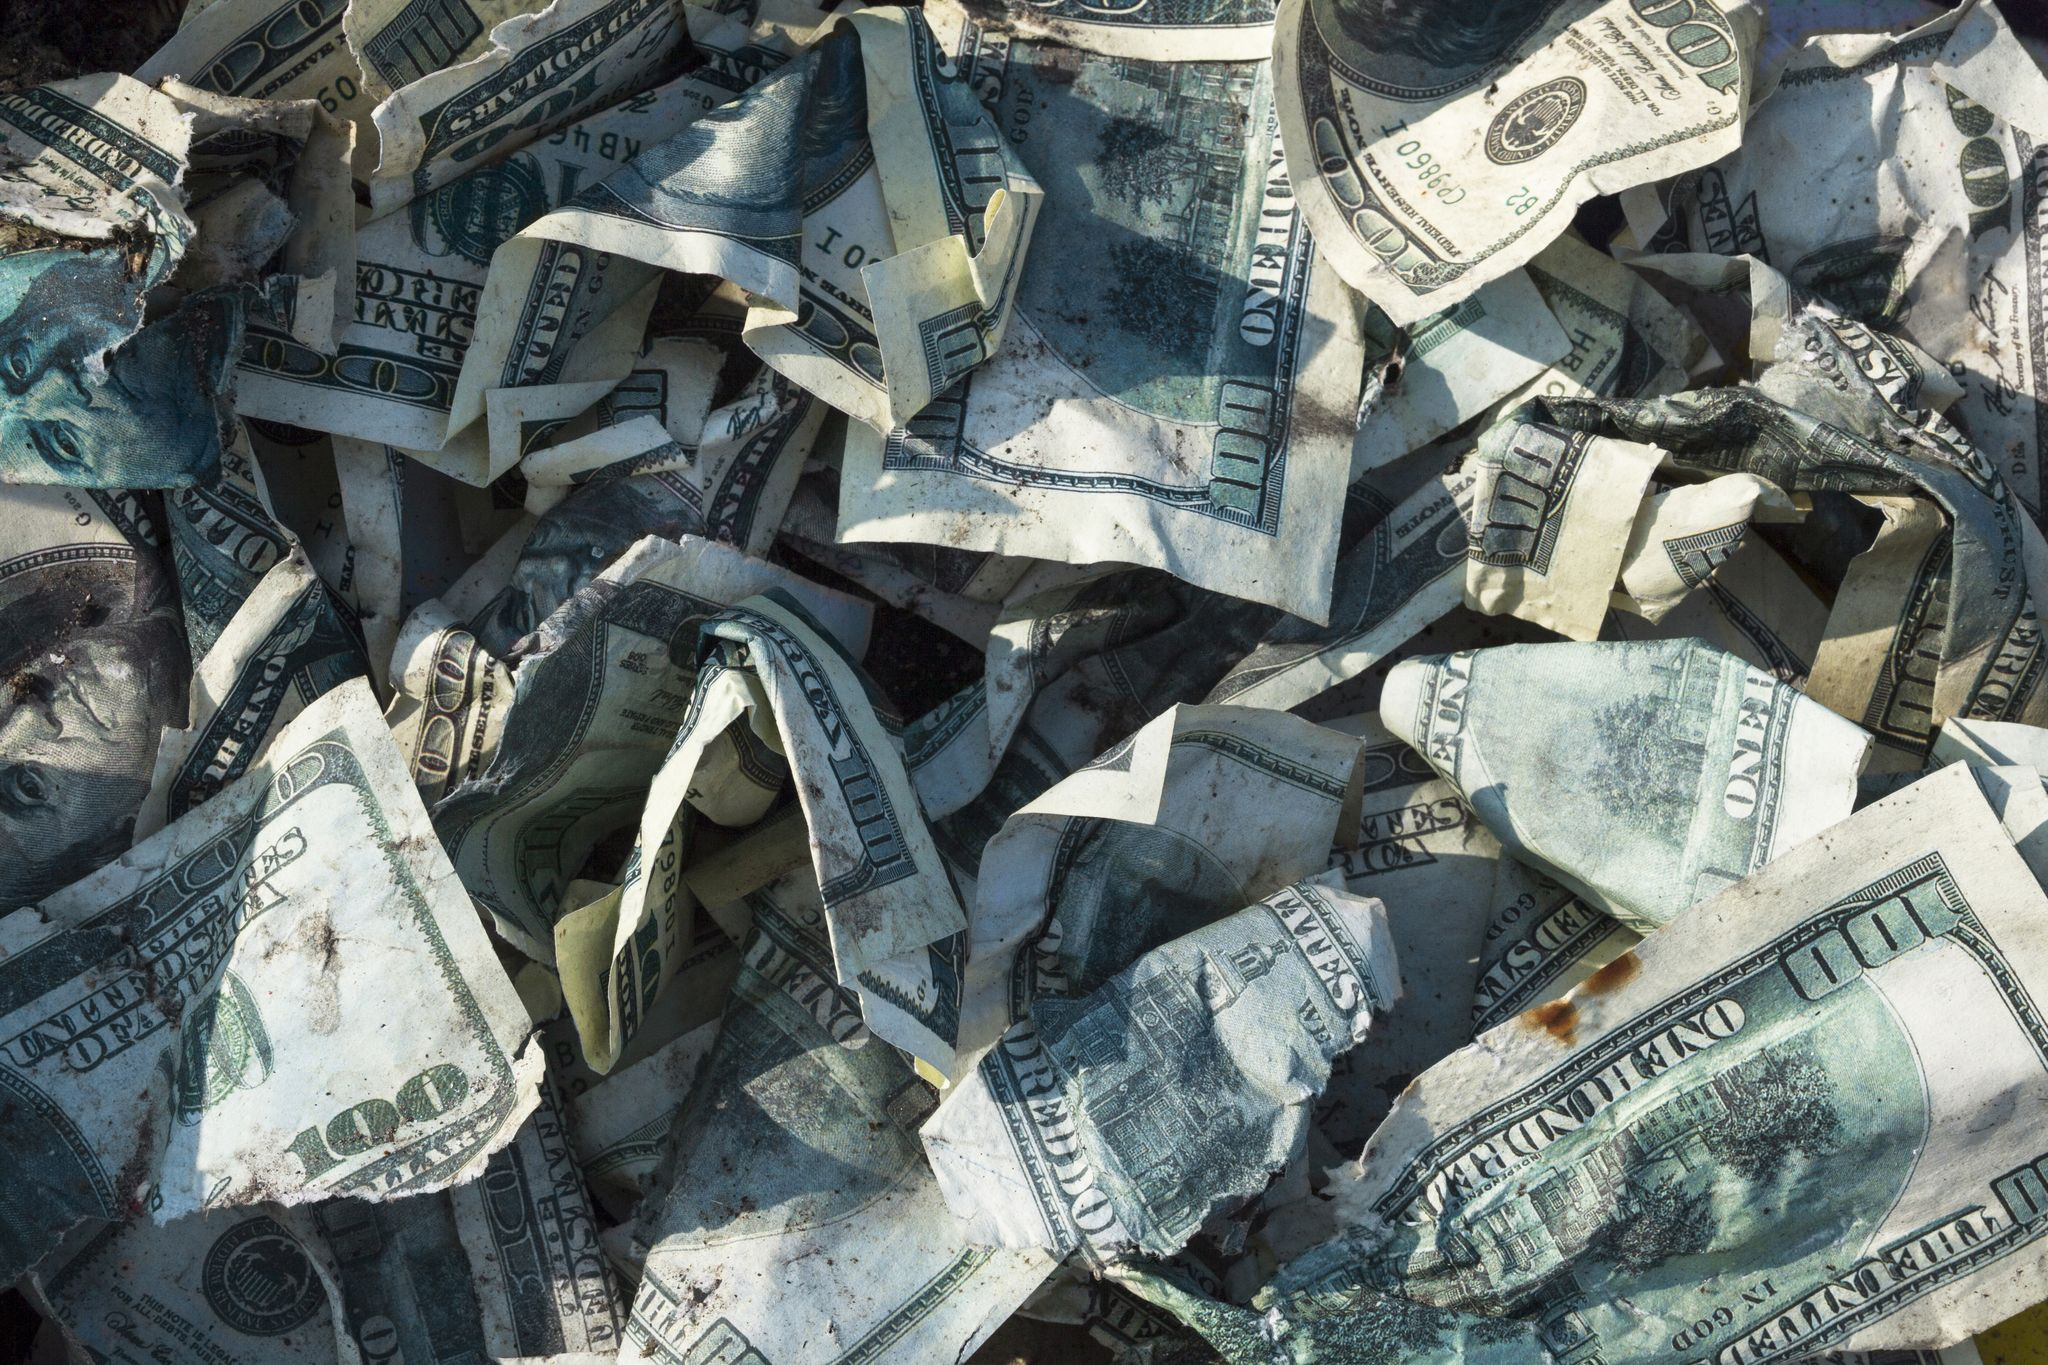 A bunch of dirty and scrunched up $1.00 bills. | Source: Shutterstock